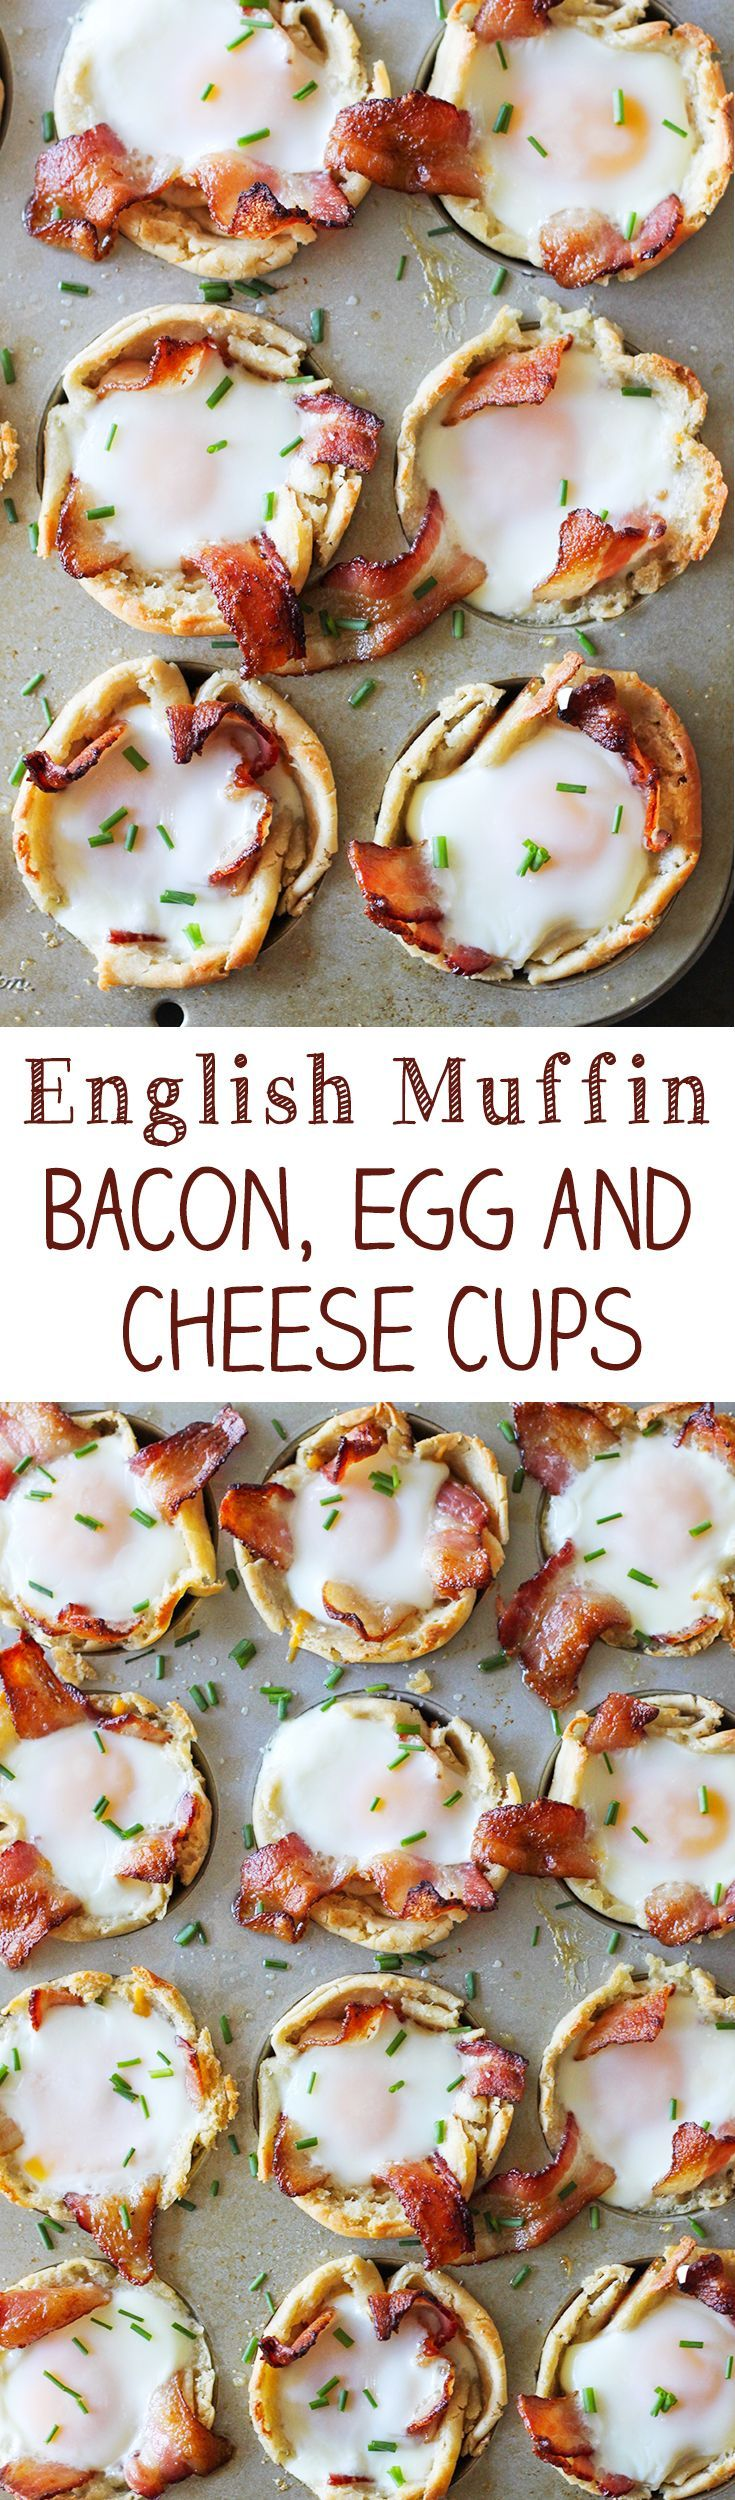 English Muffin Bacon Egg and Cheese Cups- easy and delicious breakfast recipe for the whole family!  For more easy food recipes, creative craft ideas, easy home decor and DIY projects, check us out at #no2pencil. #food #foodlover #drooling #recipeoftheday